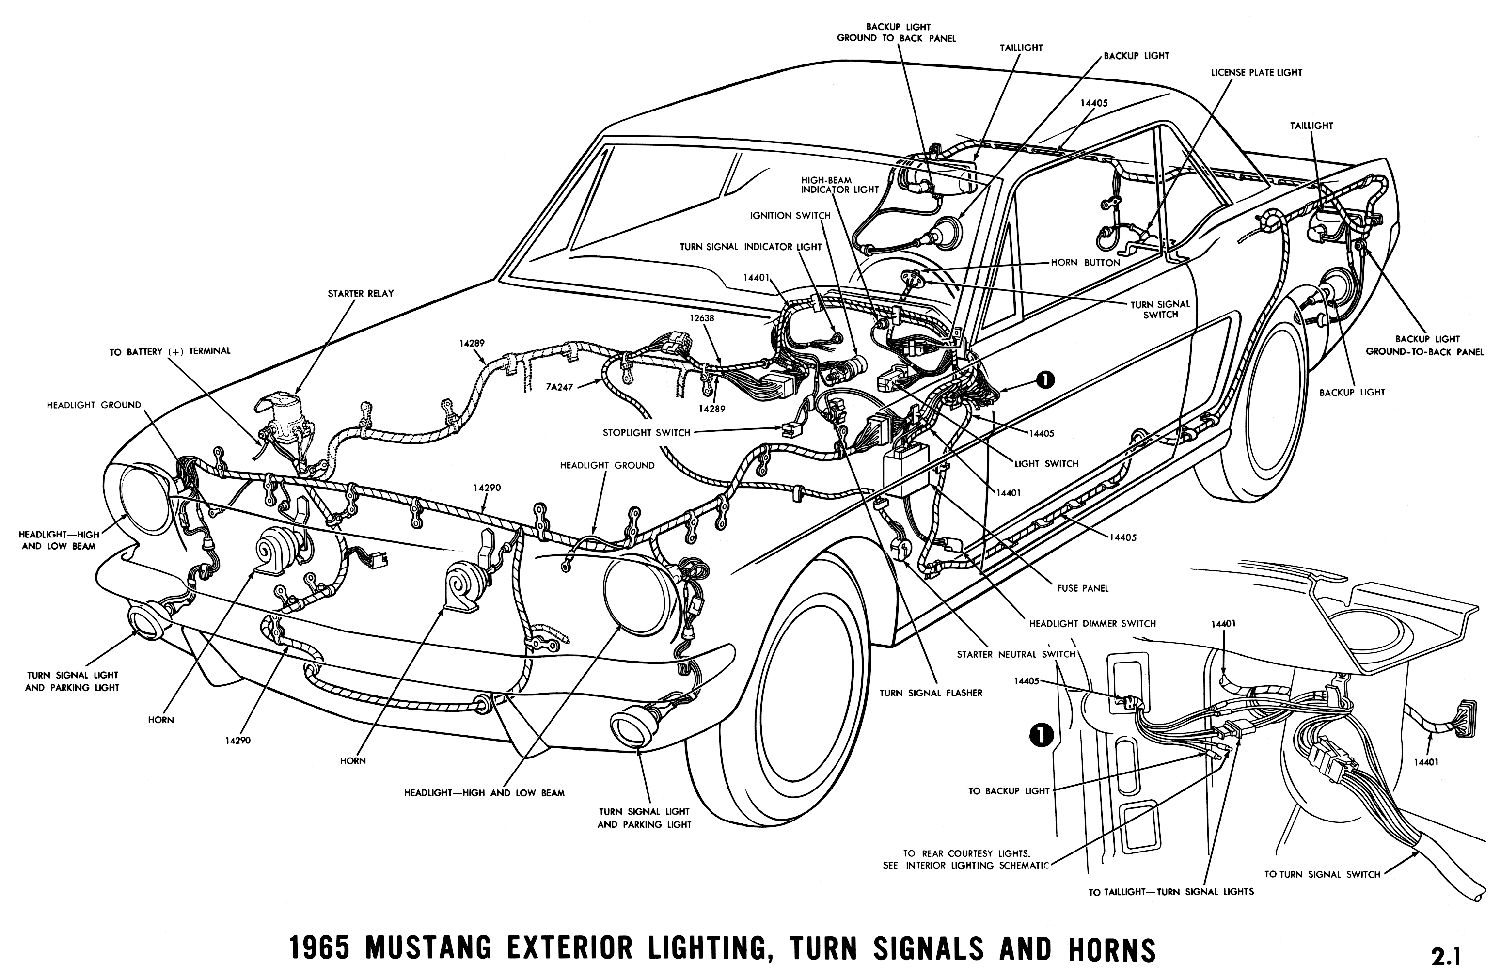 1966 mustang painless wiring diagram